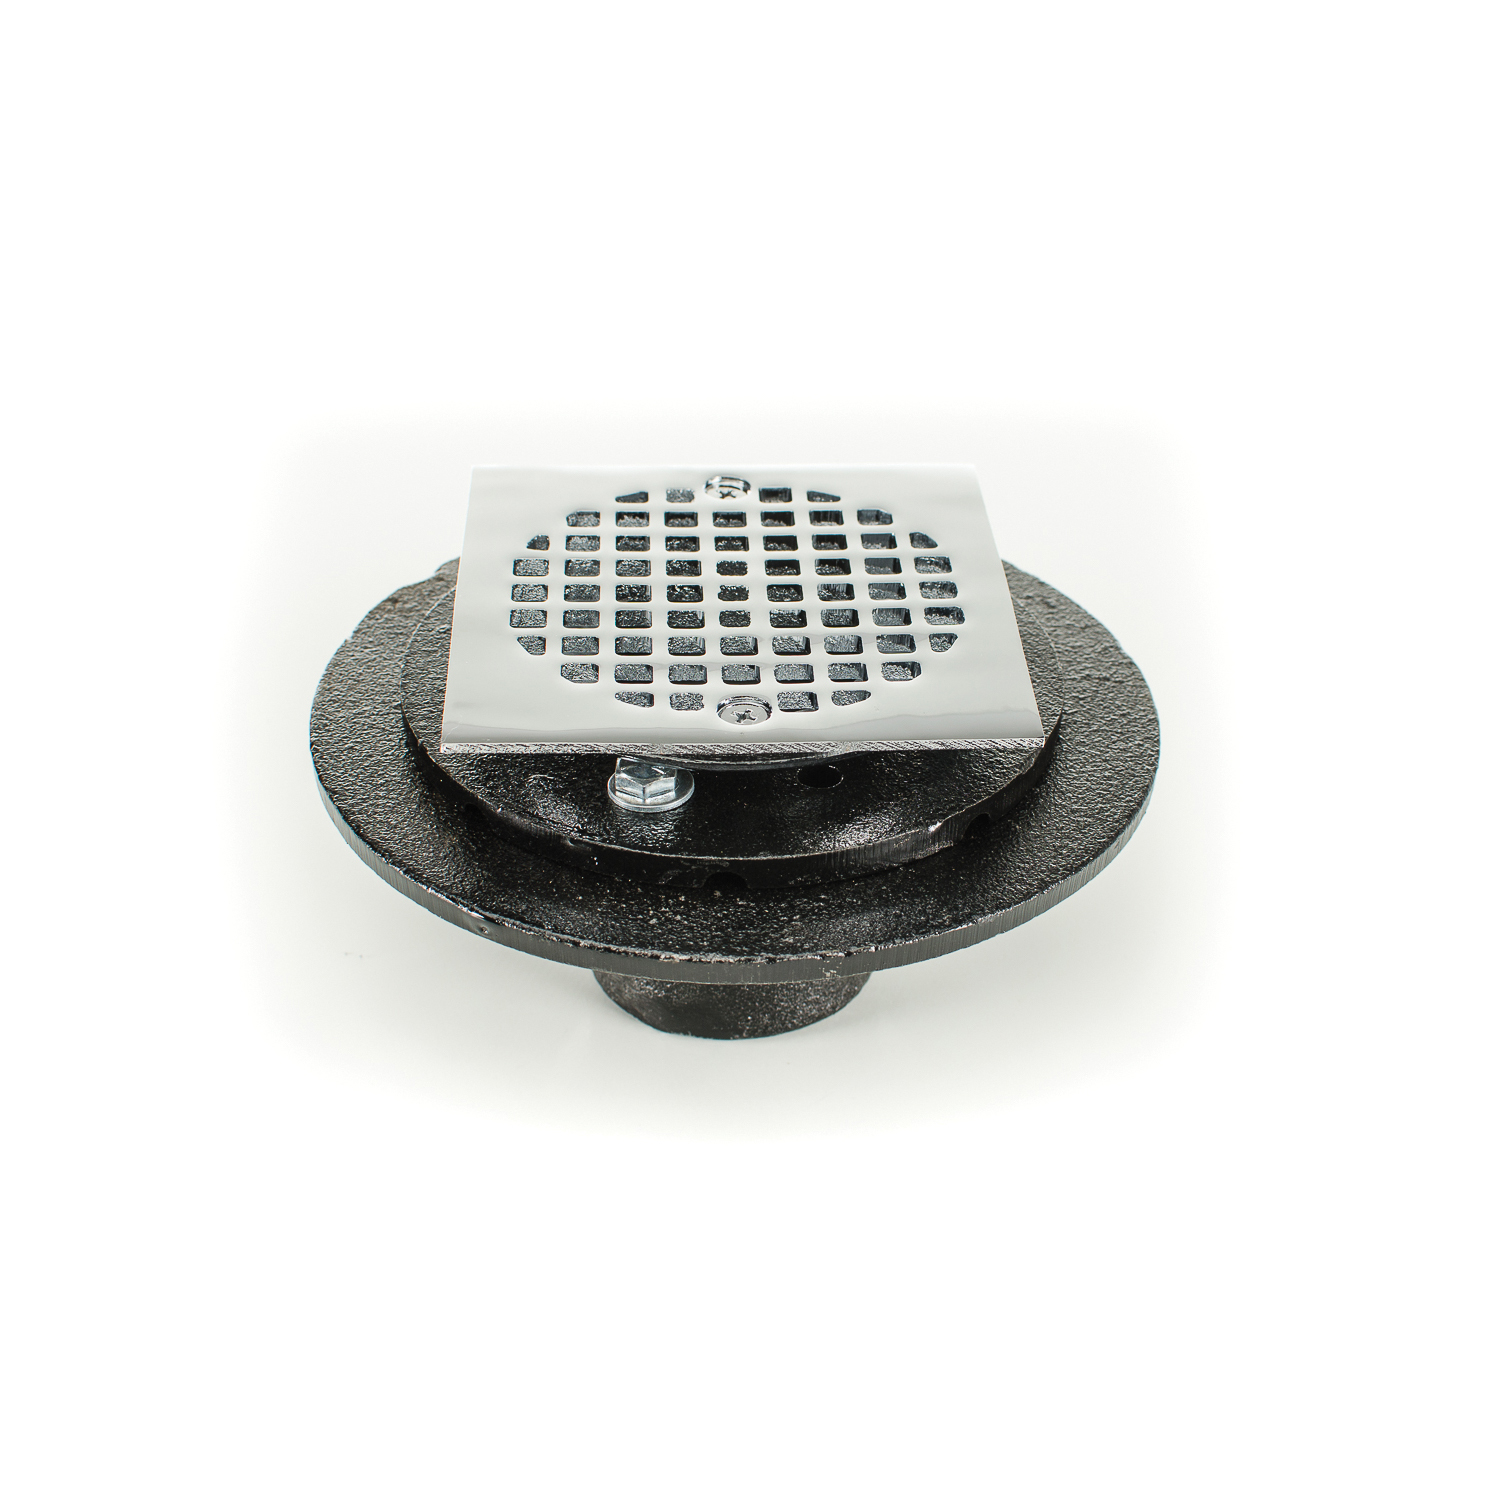 PASCO 60205SQ Square Shower and Floor Drain, 2 in Nominal, No Hub Connection, Cast Iron Drain